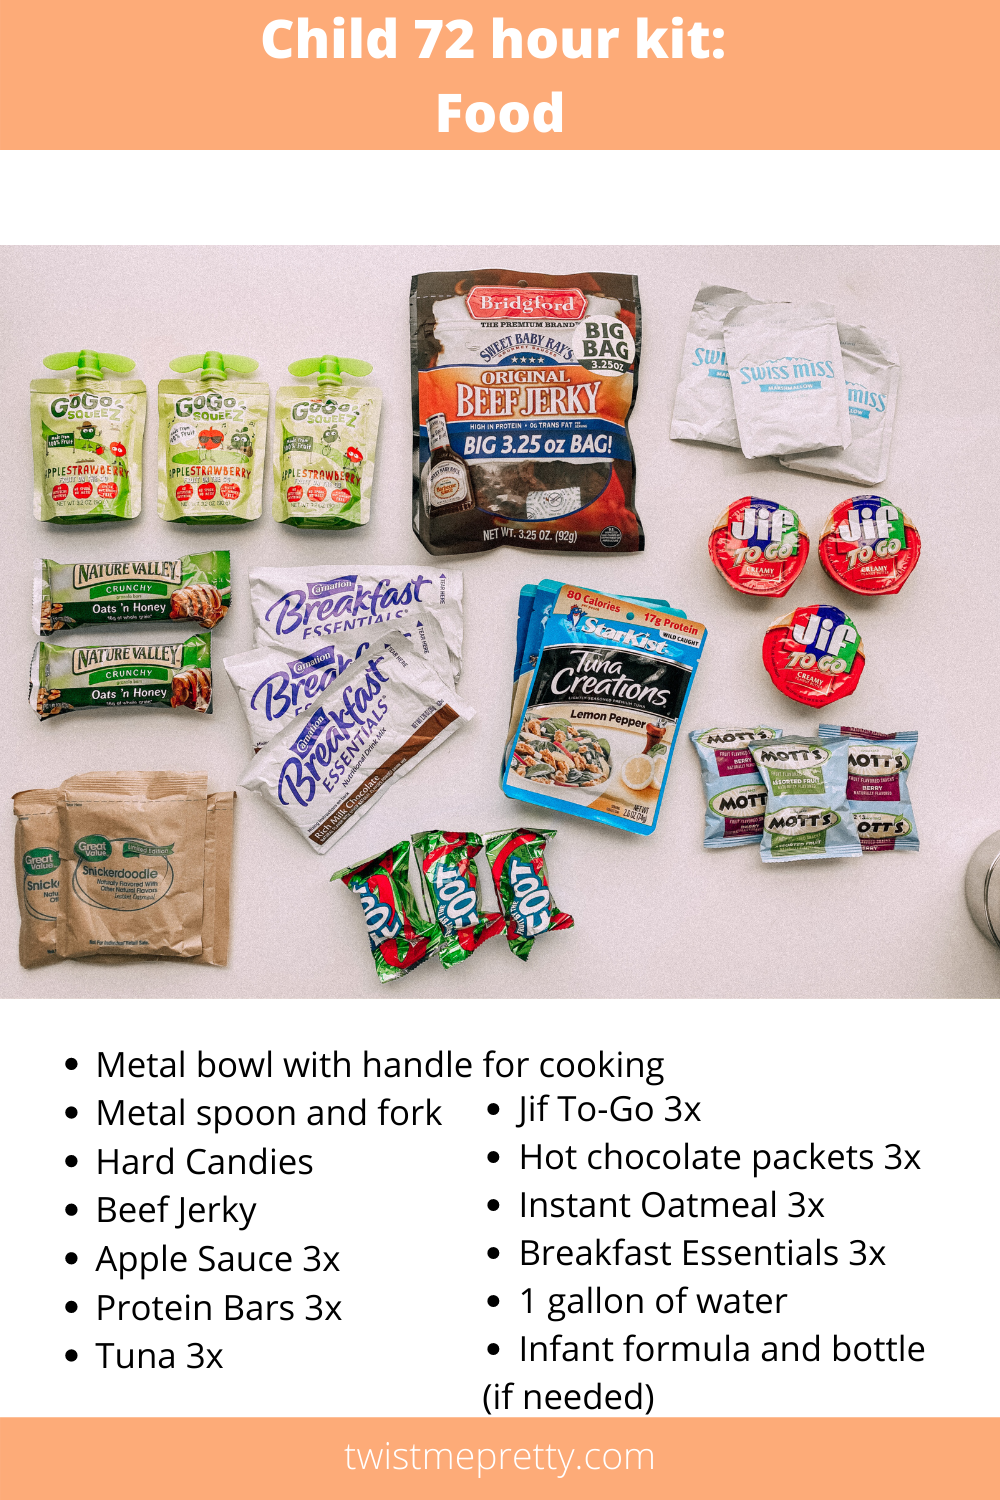 My ultimate guide to 72 hour kits for your kids what's in my food kit www.twistmepretty.com